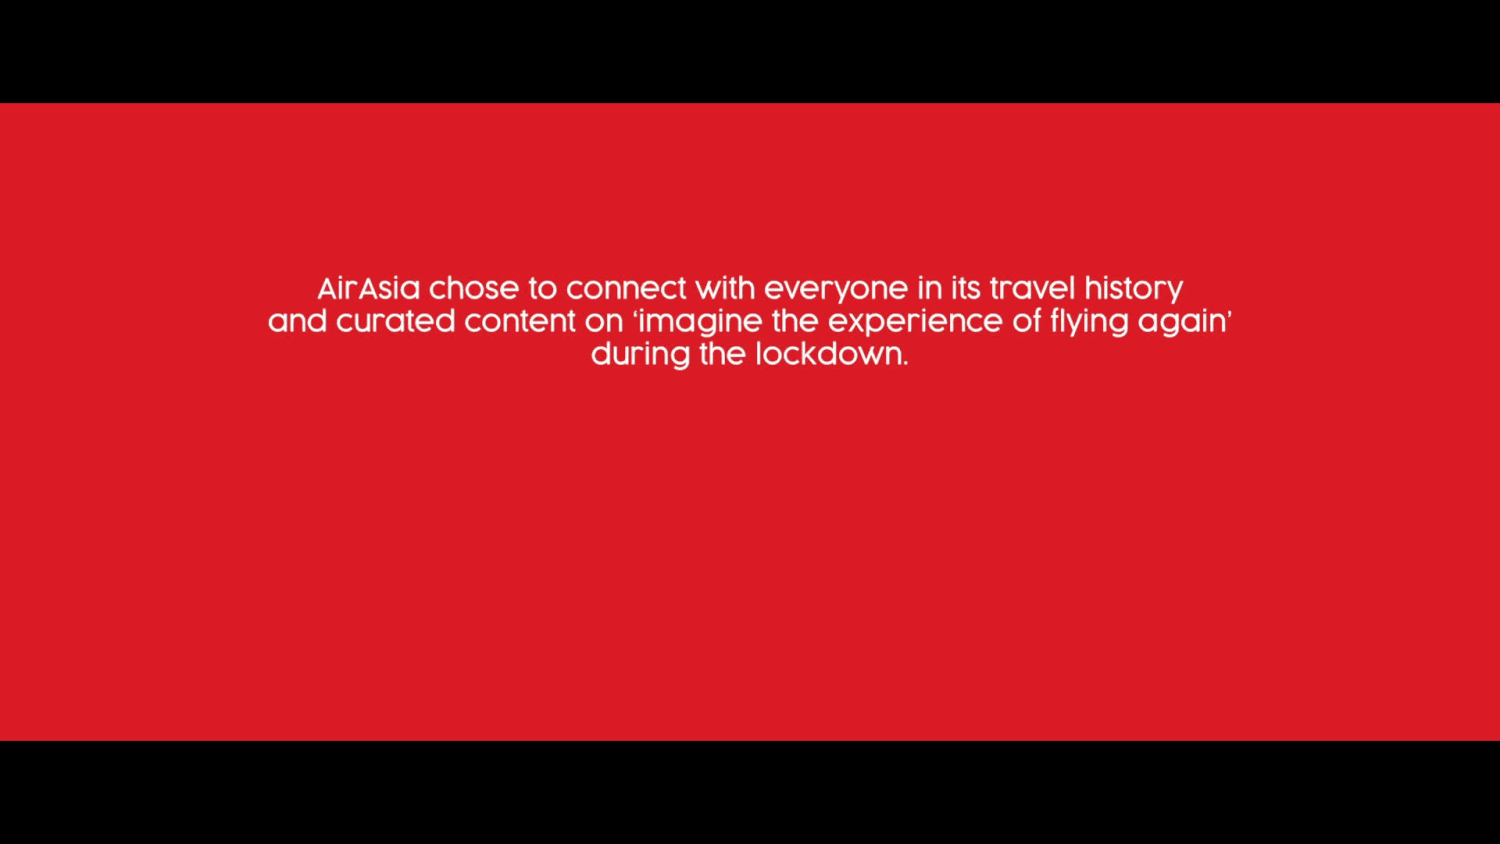 Air Asia 2 Min Film With Intro Slide